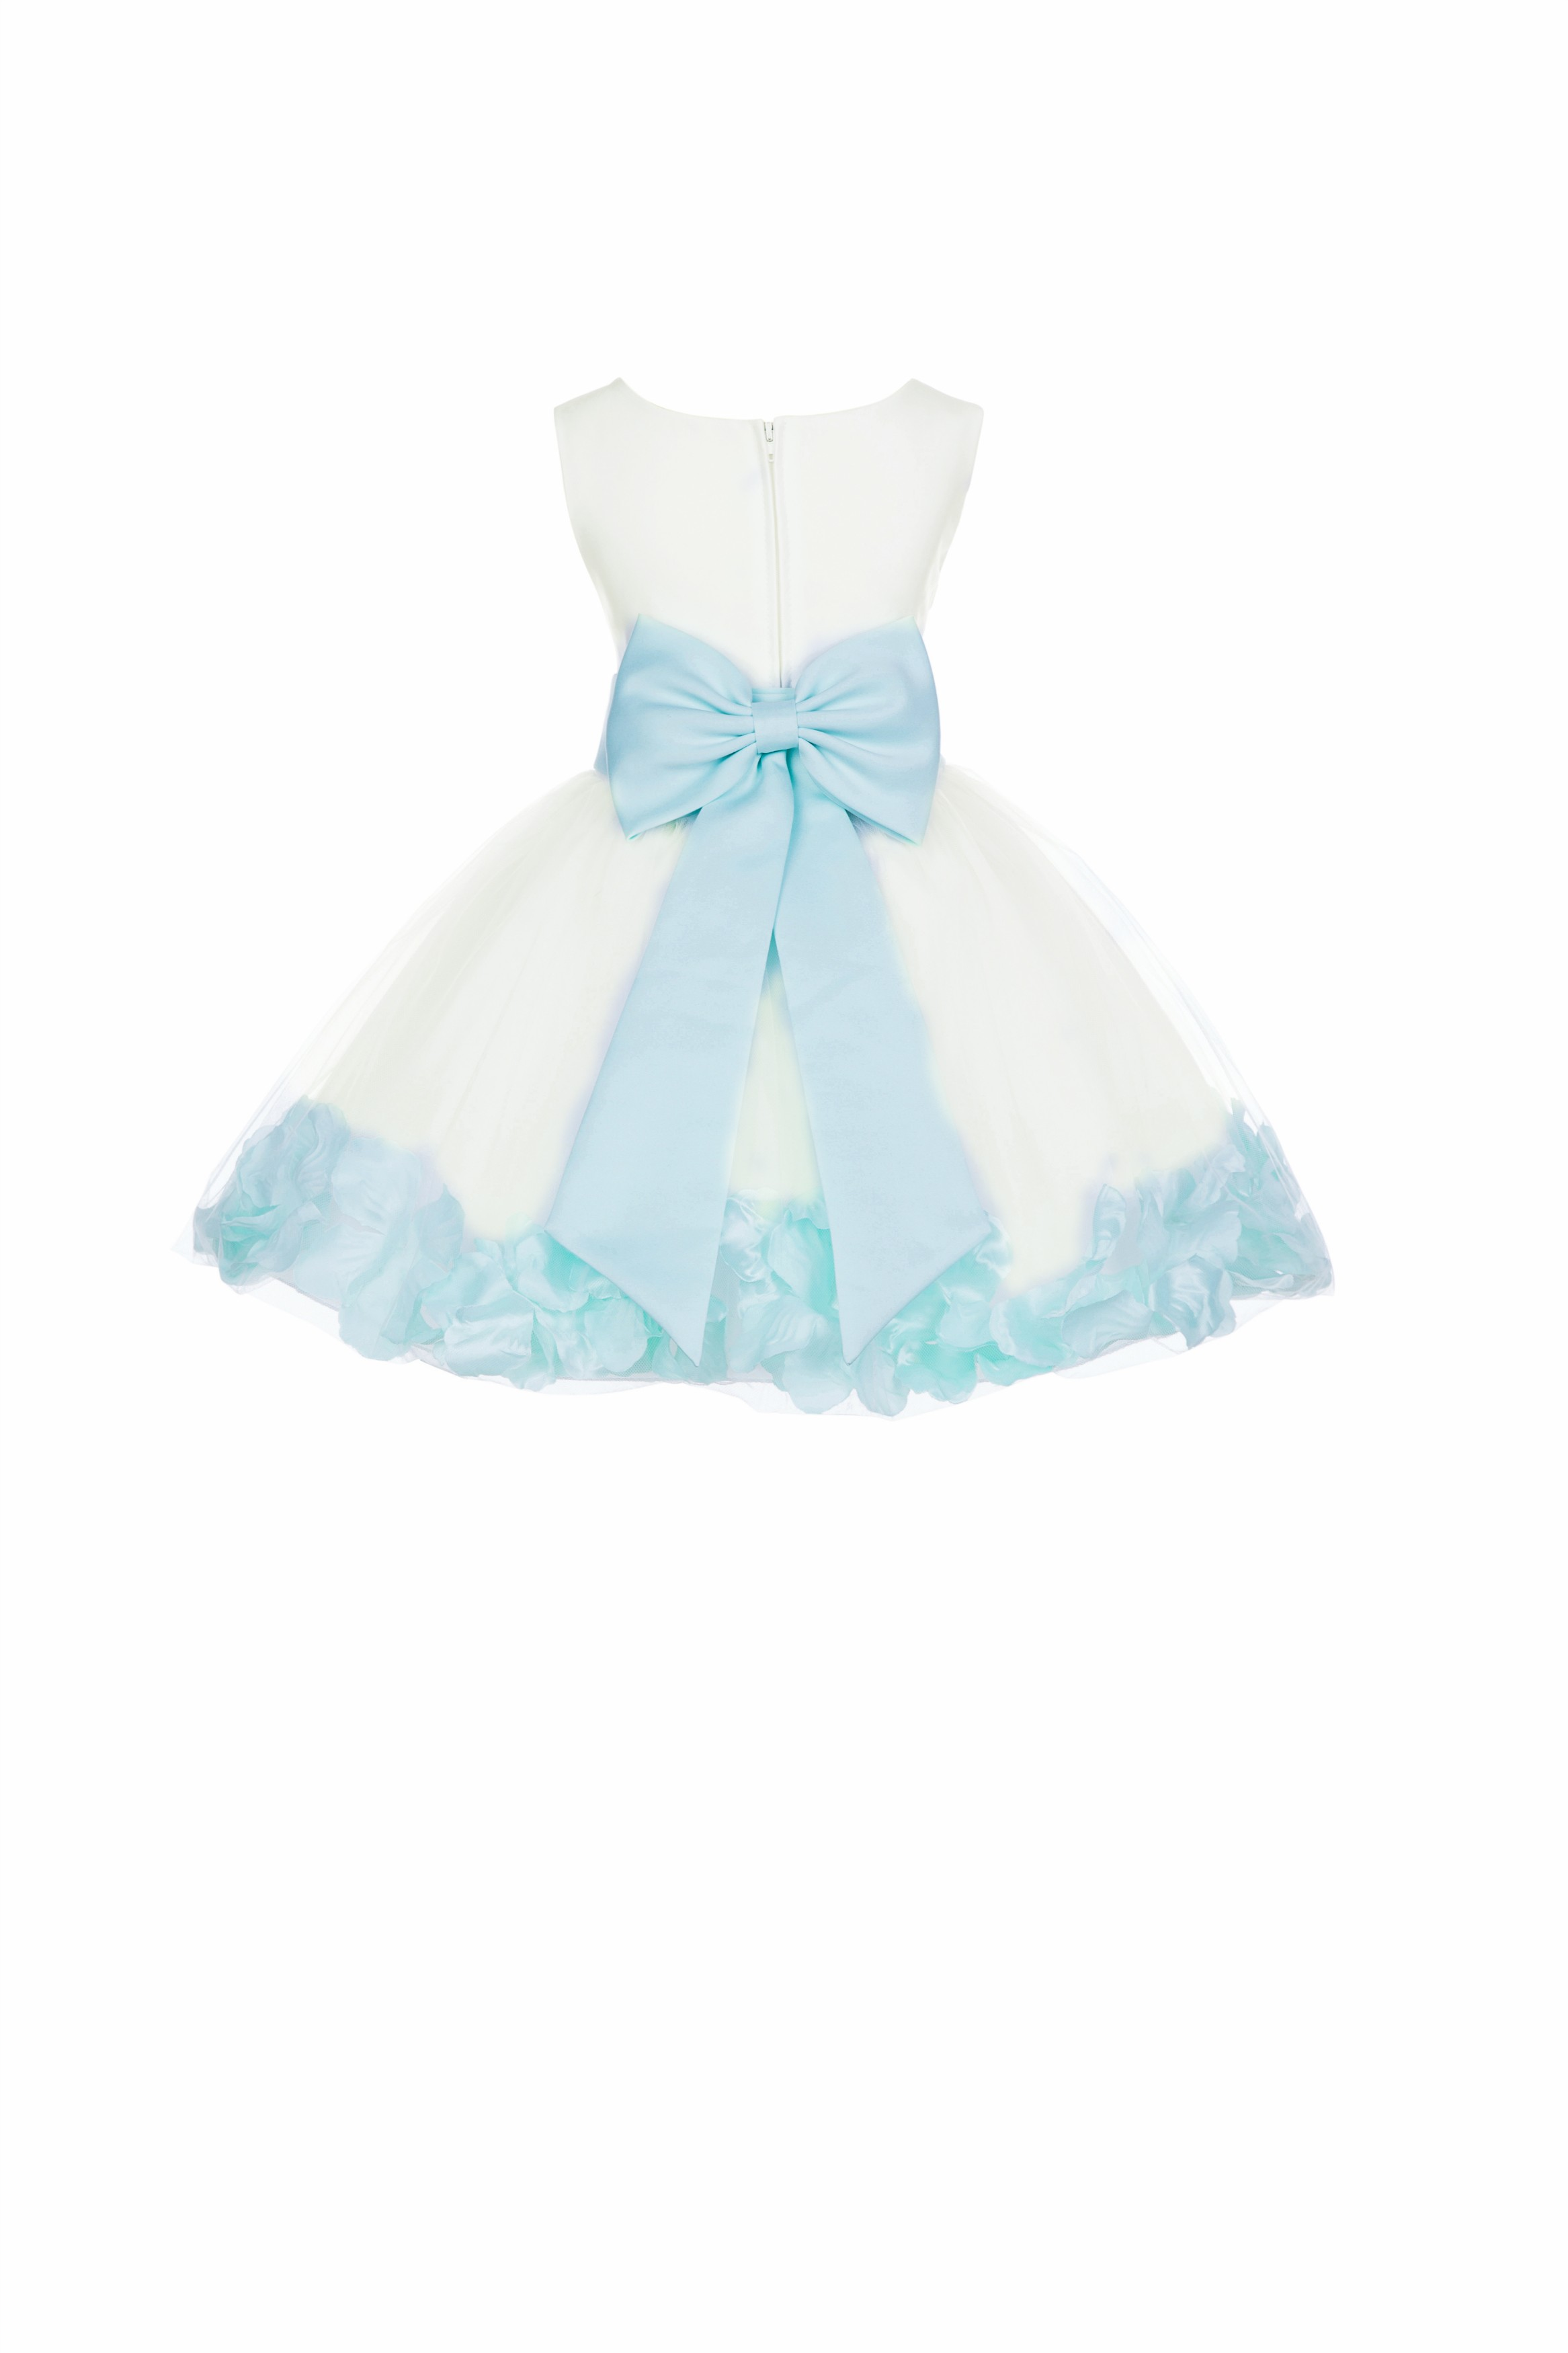 Ivory/Mint Rose Petals Tulle Flower Girl Dress Pageant 305T